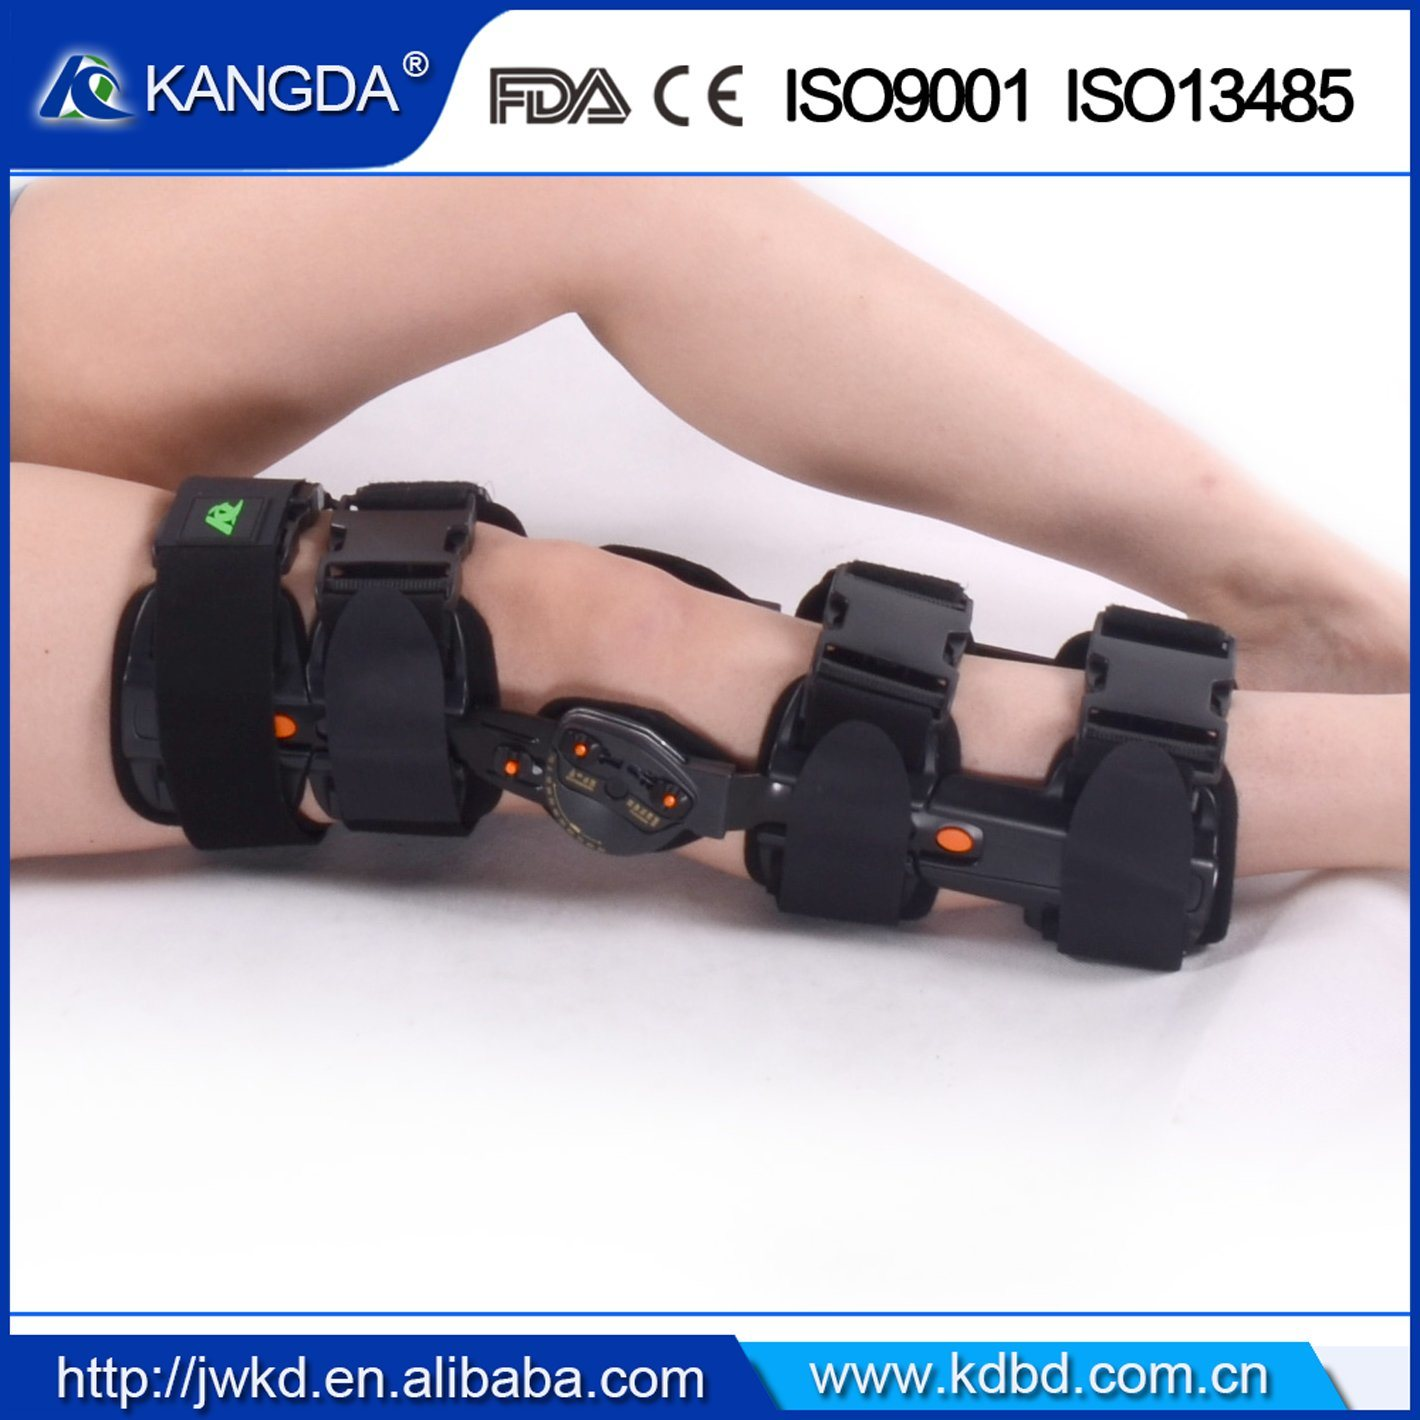 Factory Price Orthopedic Adjustable Knee Support for Rehabilitation